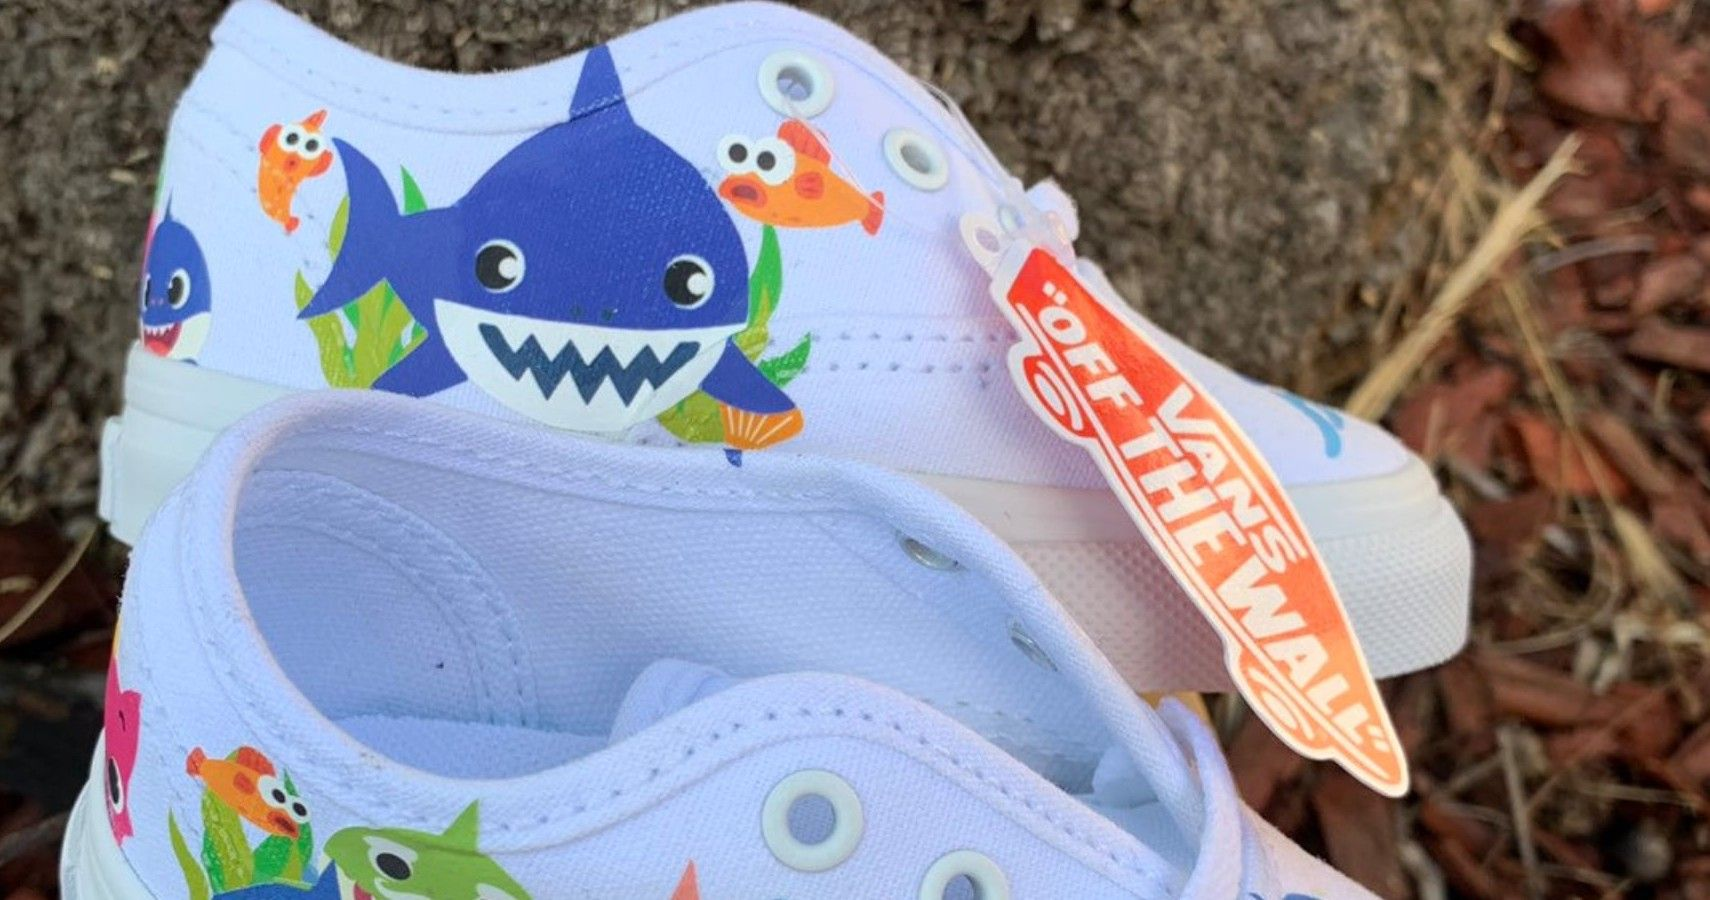 723dd6a3ae092 Baby Shark' Custom Shoe Line For Babies and Kids Available On Etsy